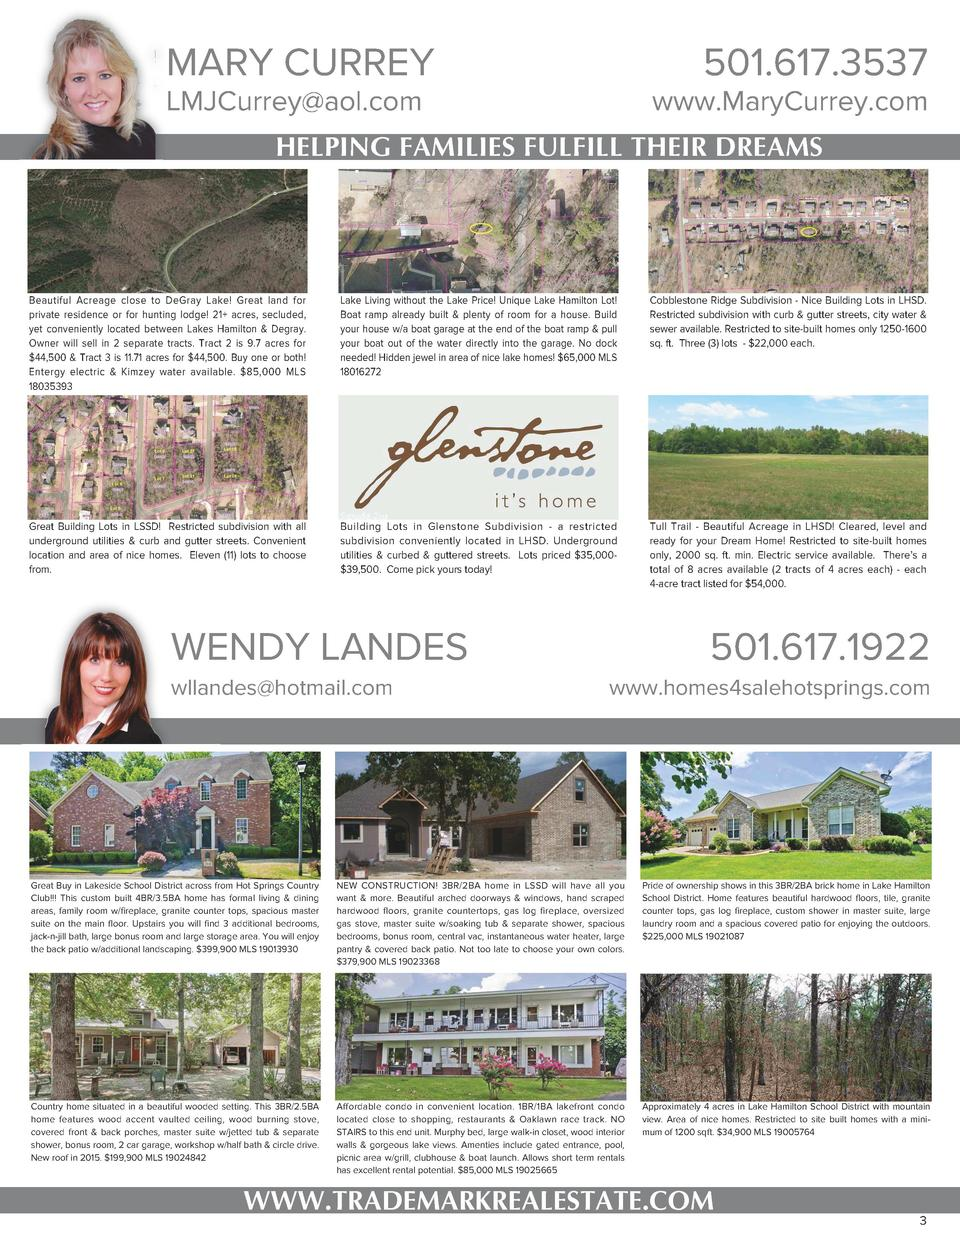 MARY CURREY  501.617.3537  LMJCurrey aol.com  www.MaryCurrey.com  HELPING FAMILIES FULFILL THEIR DREAMS  Beautiful Acreage...